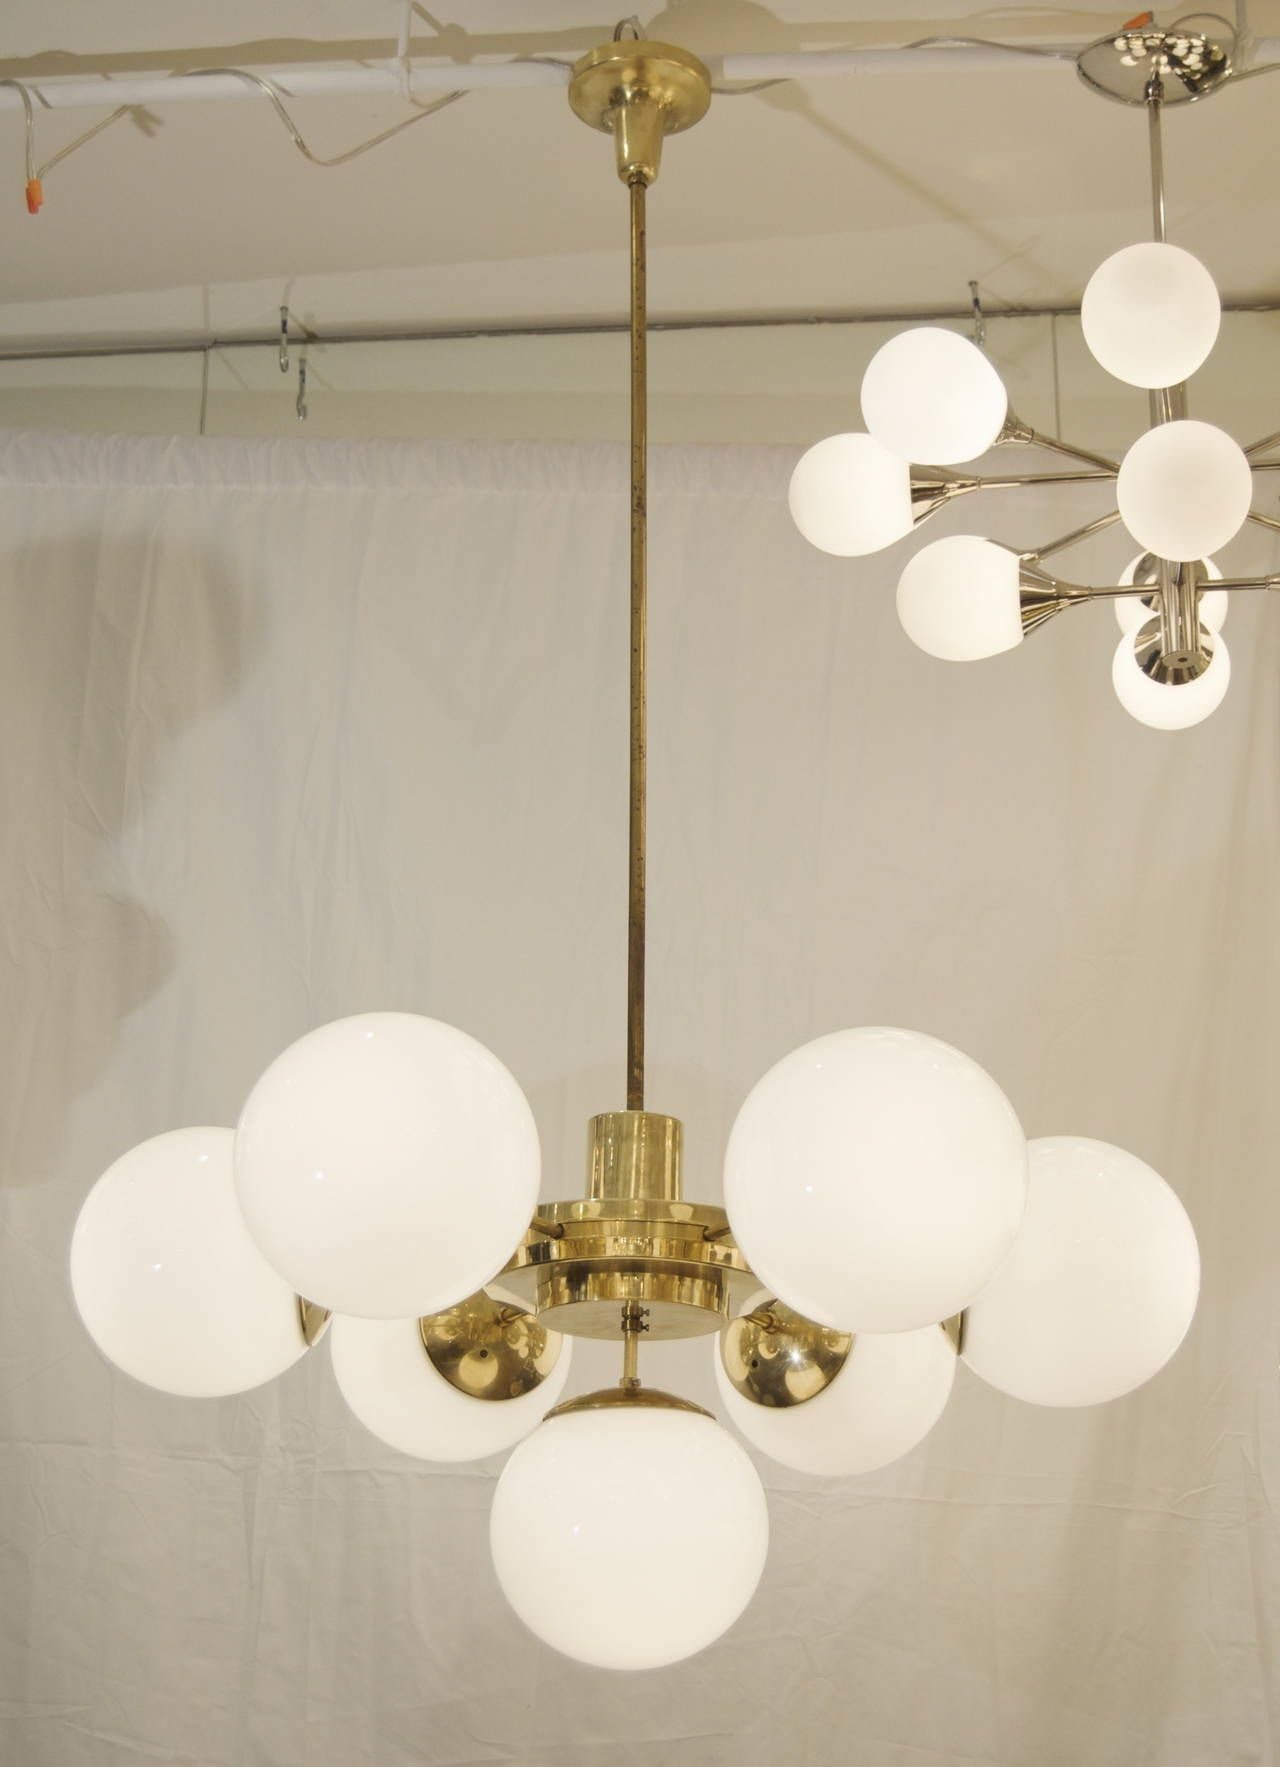 Spectacular And Massive Bauhaus Era Chandeliers Image 5